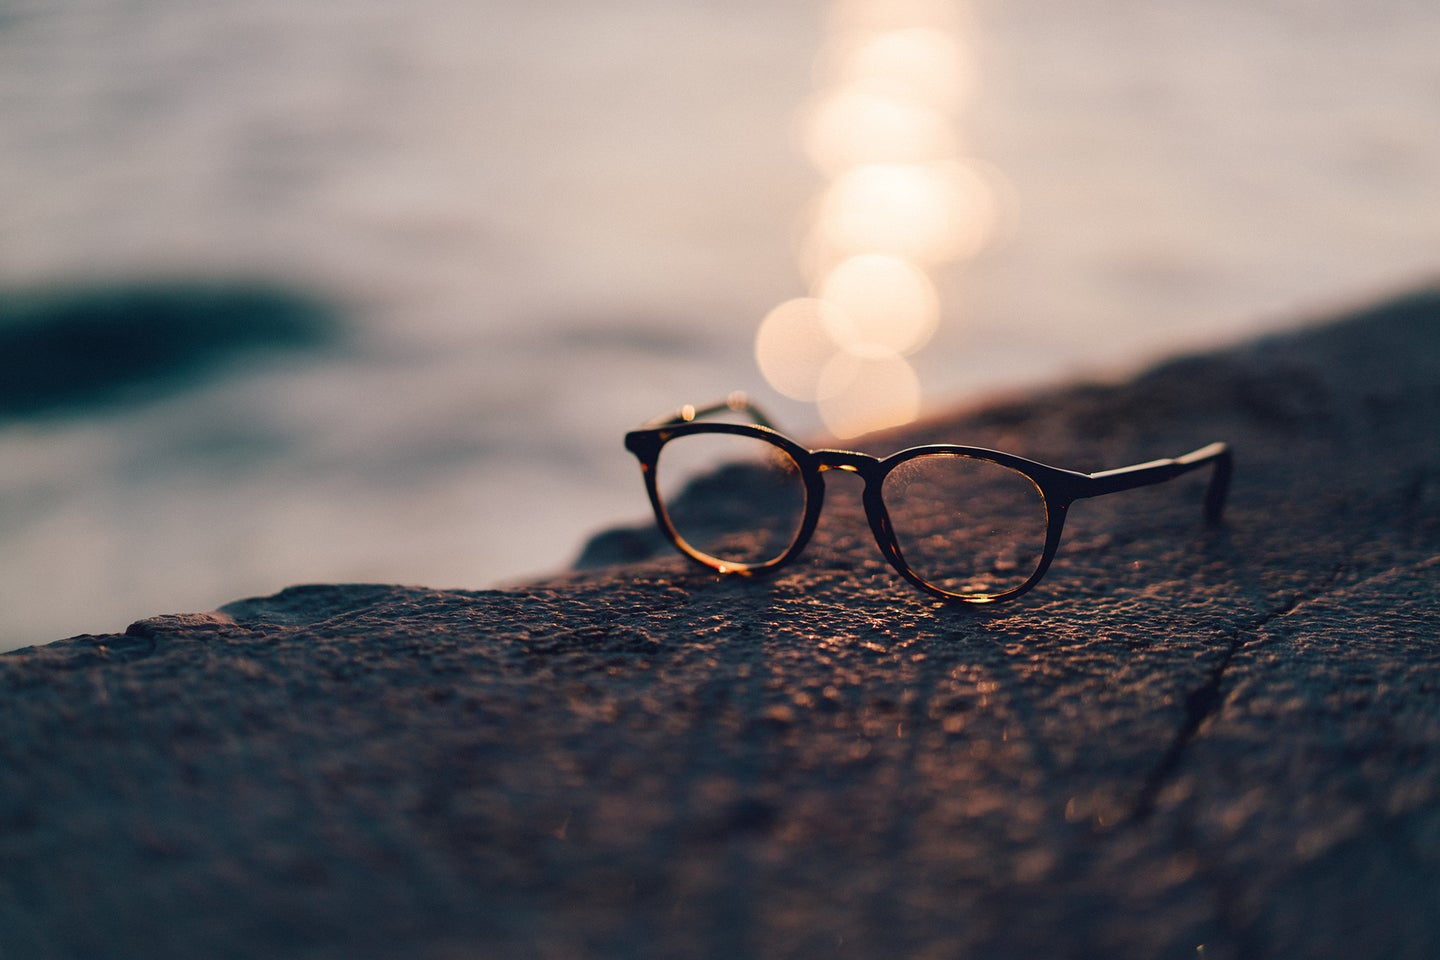 glasses near water with the sun casting a shadow